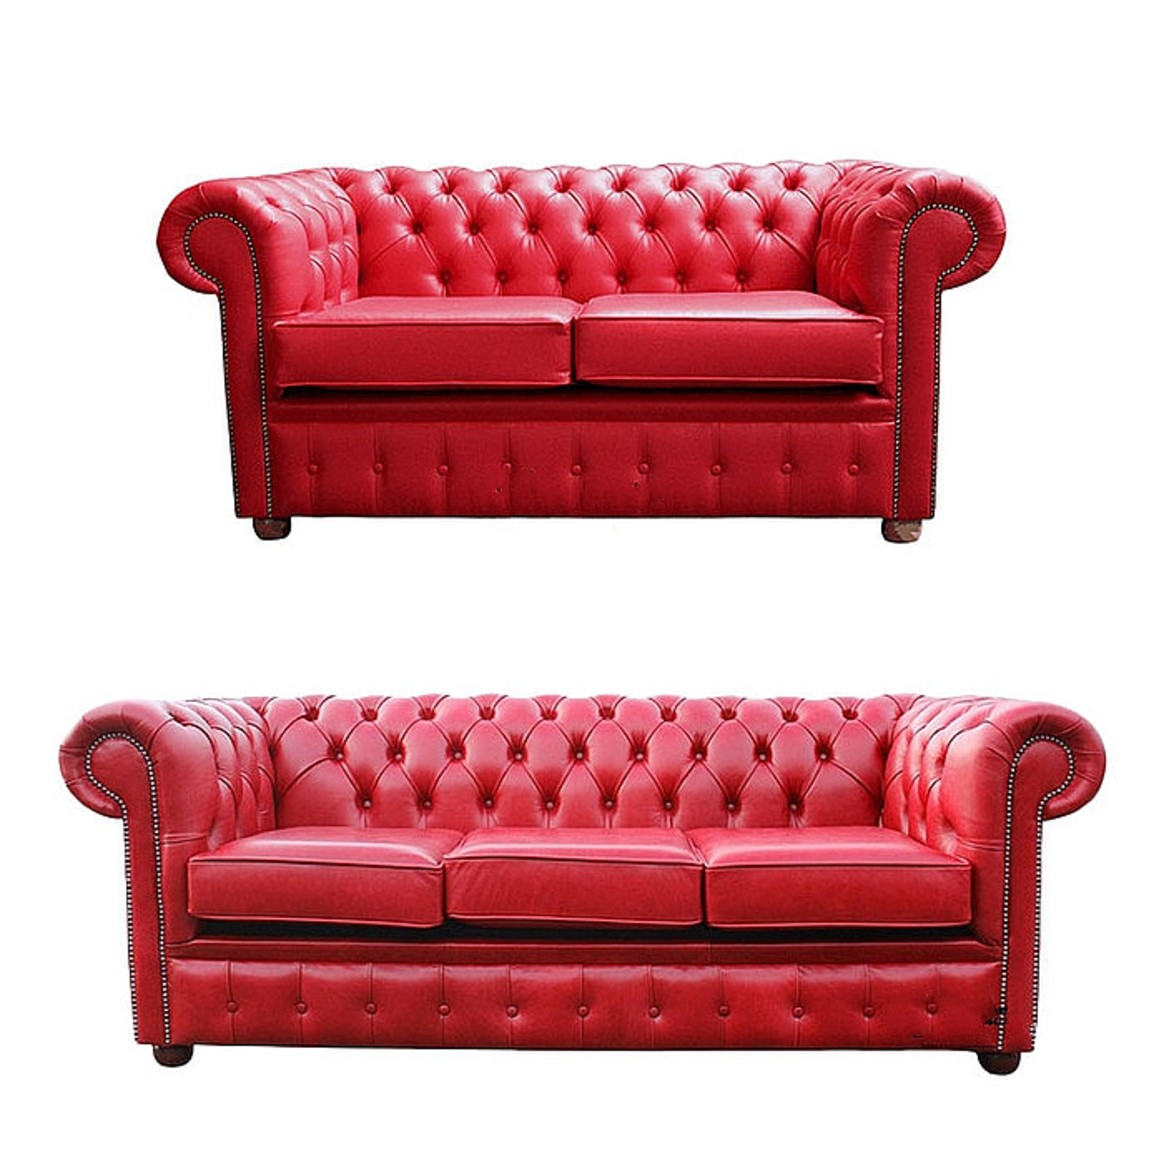 chesterfield 2 seater 3 seater sofa old english gamay red leather rh winchesterleather com red leather sofas and chairs red leather sofas gumtree